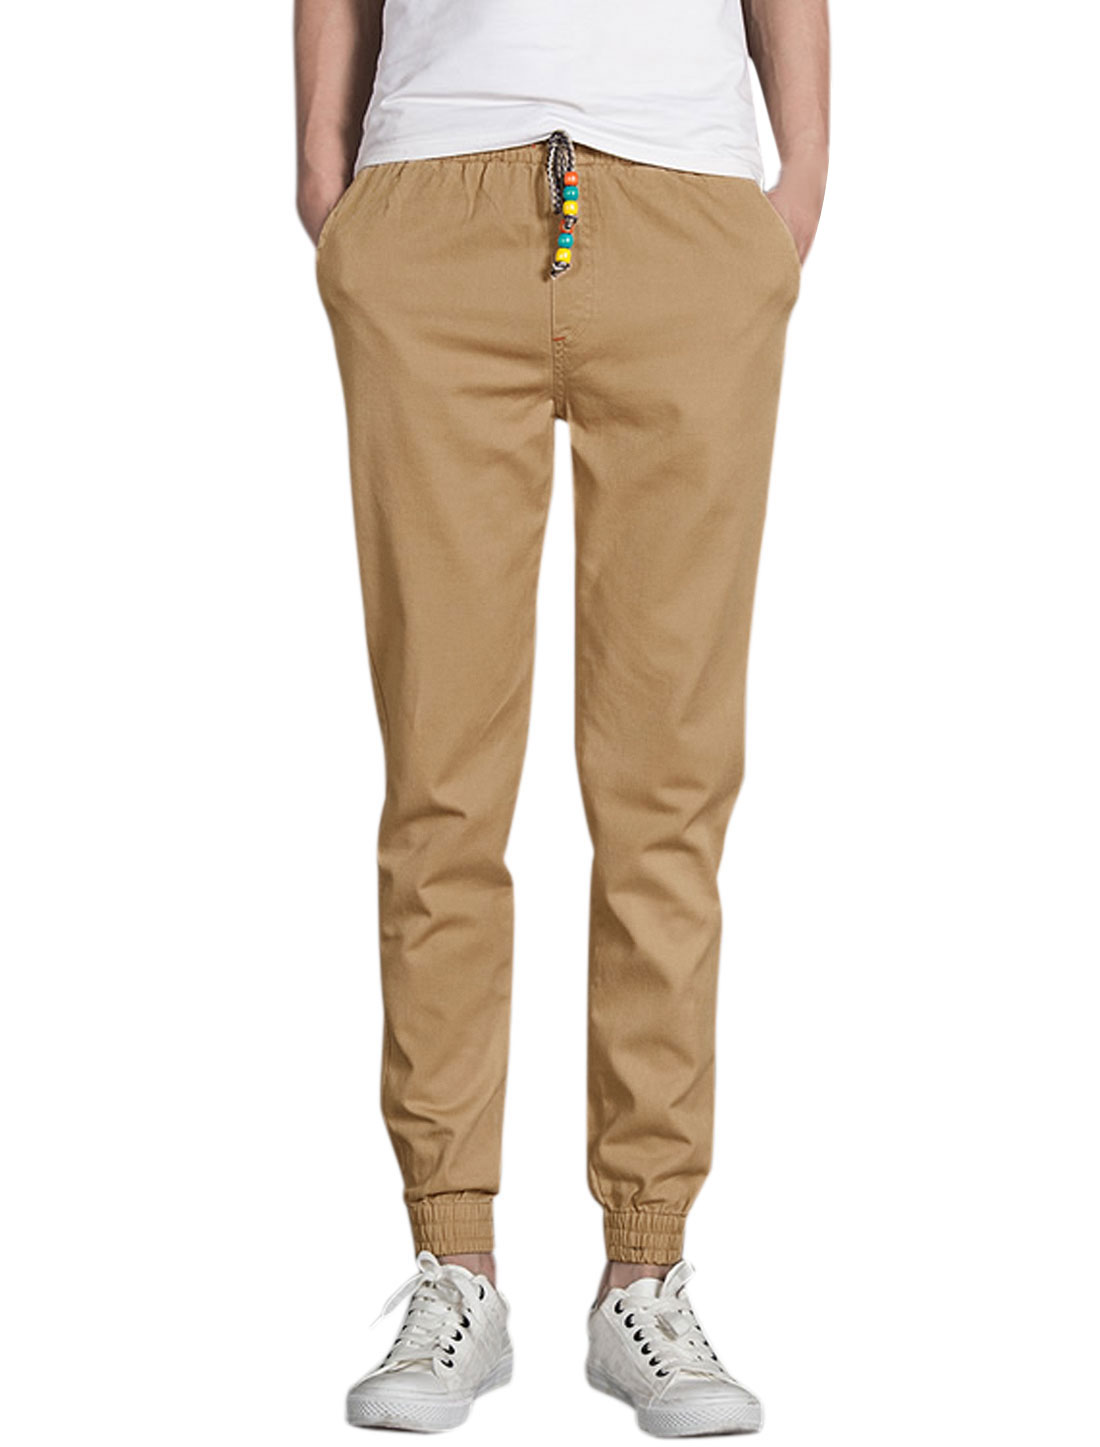 Men Elastic Waist w Cuff Slim Fit Tapered Pants Khaki W32